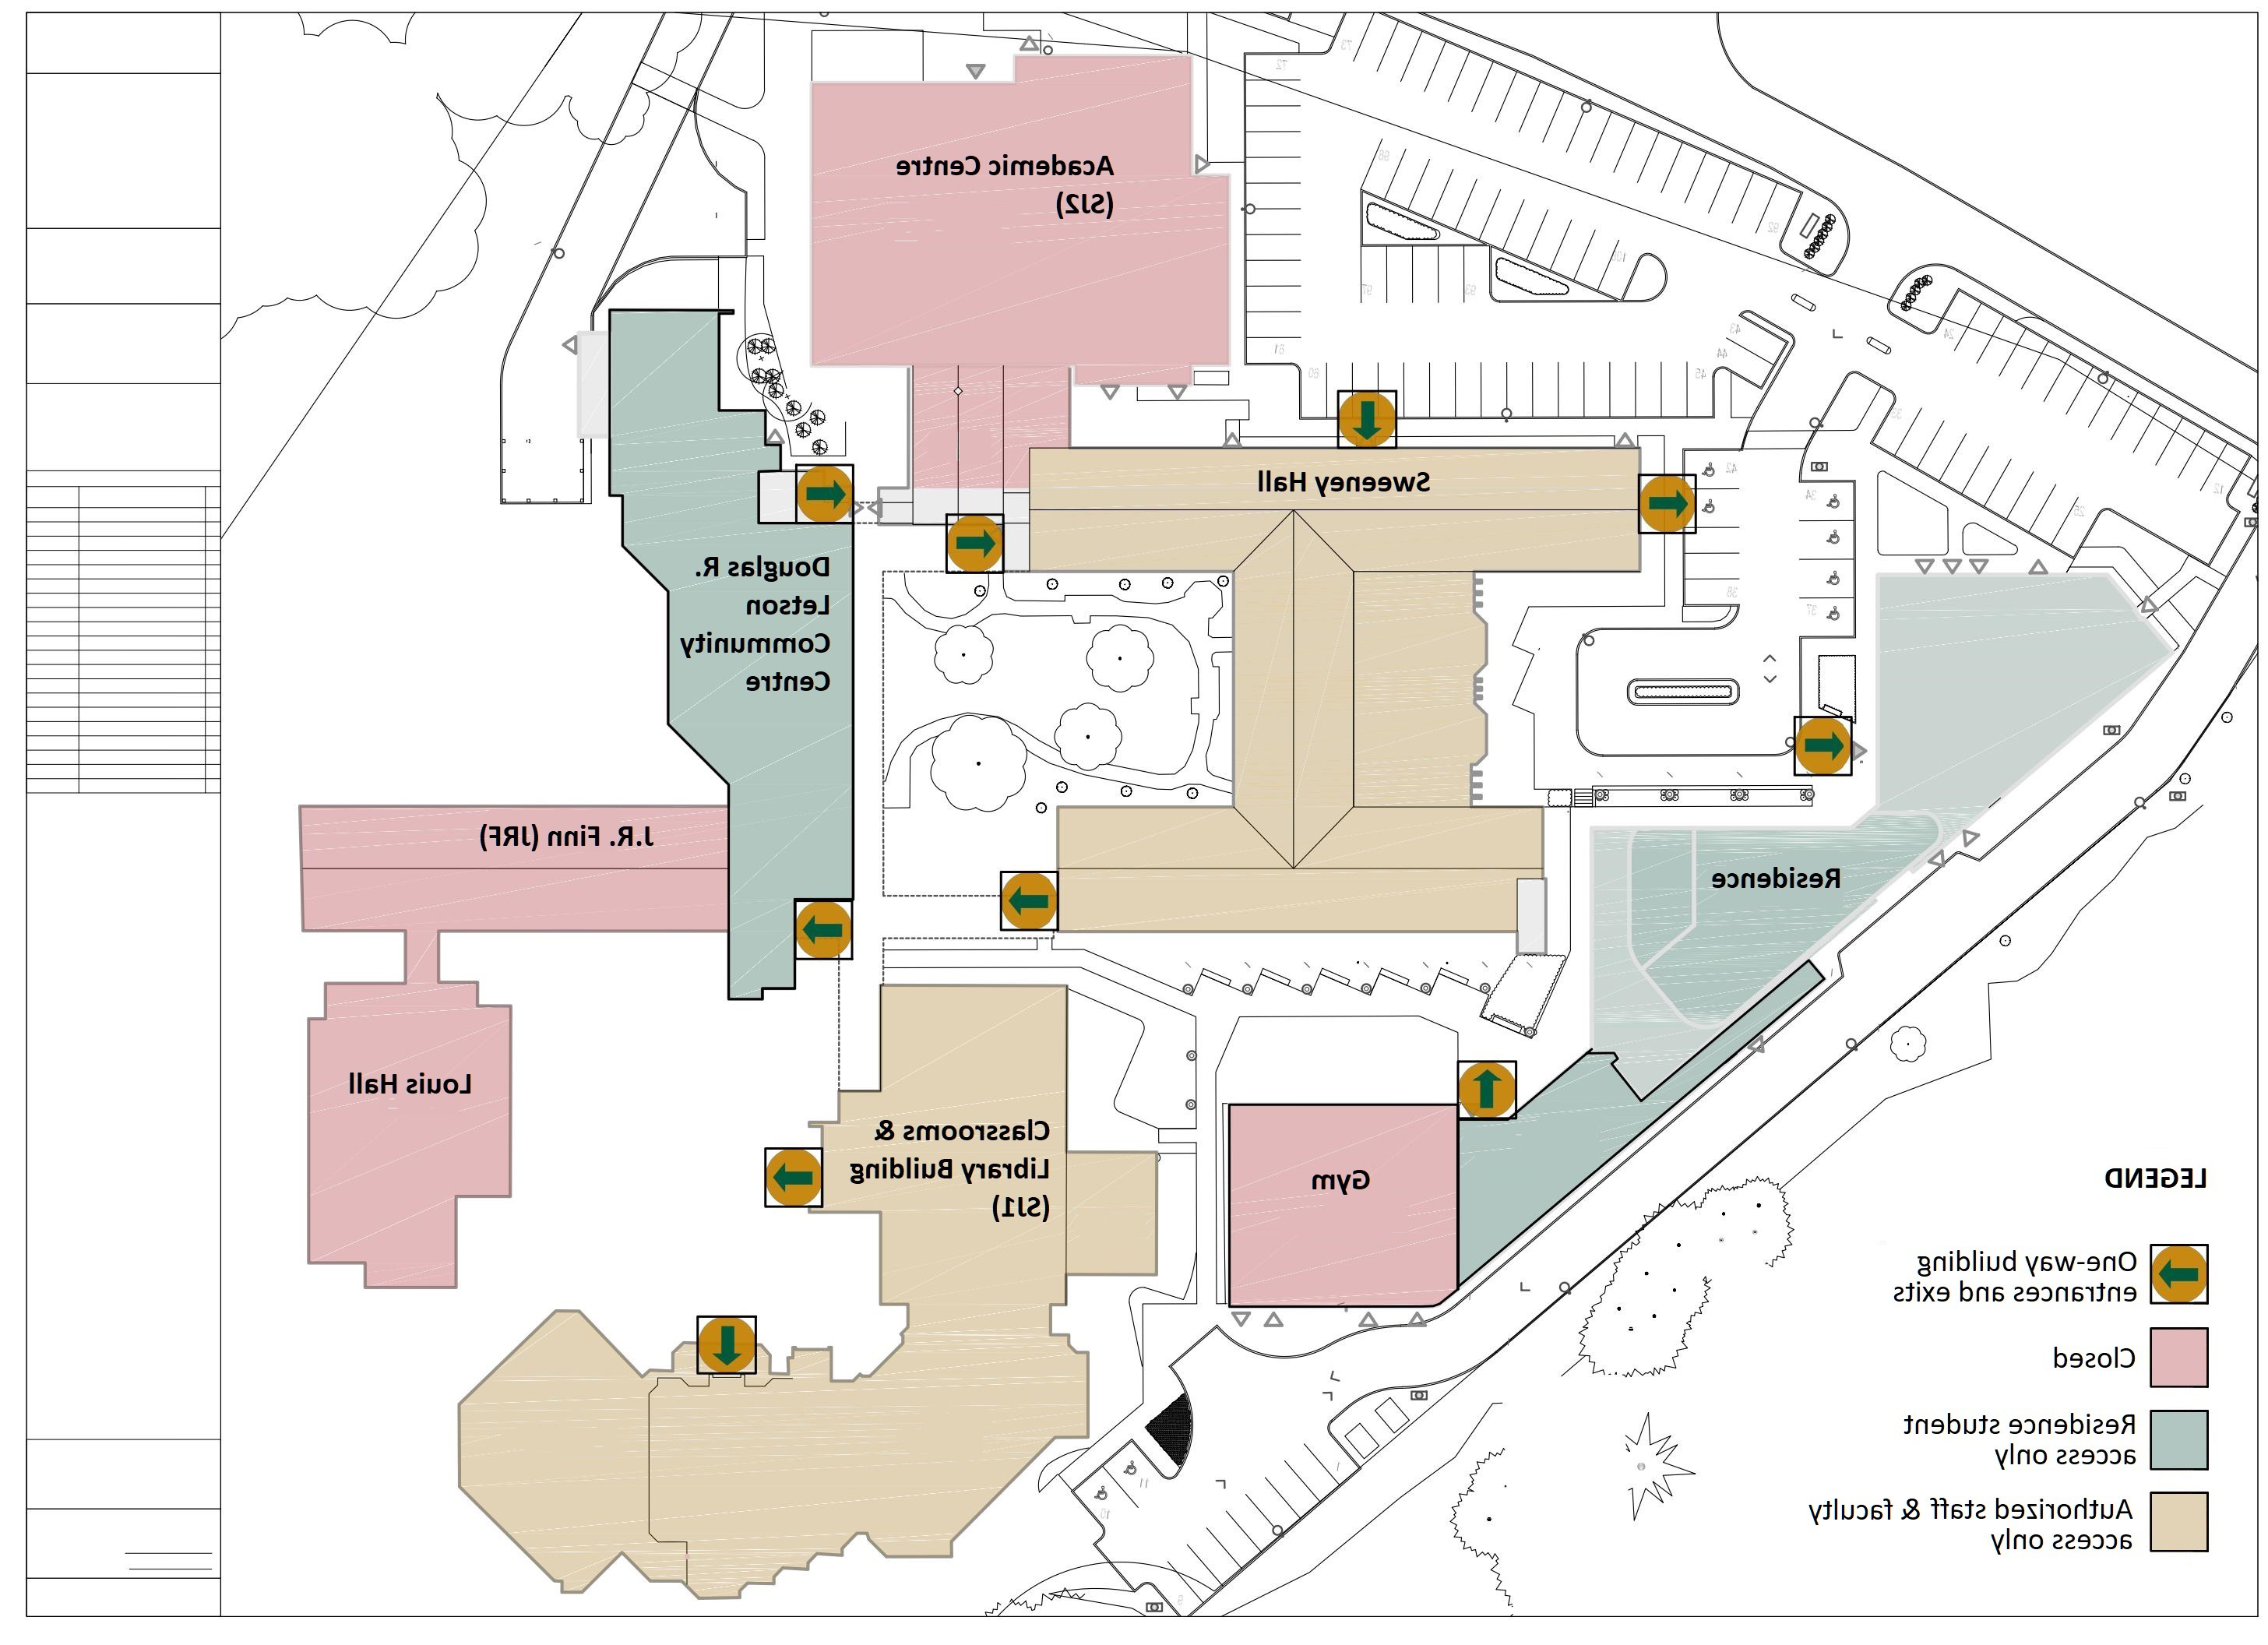 Overhead line drawing of campus building to indicate which buildings are impacted by COVID closures